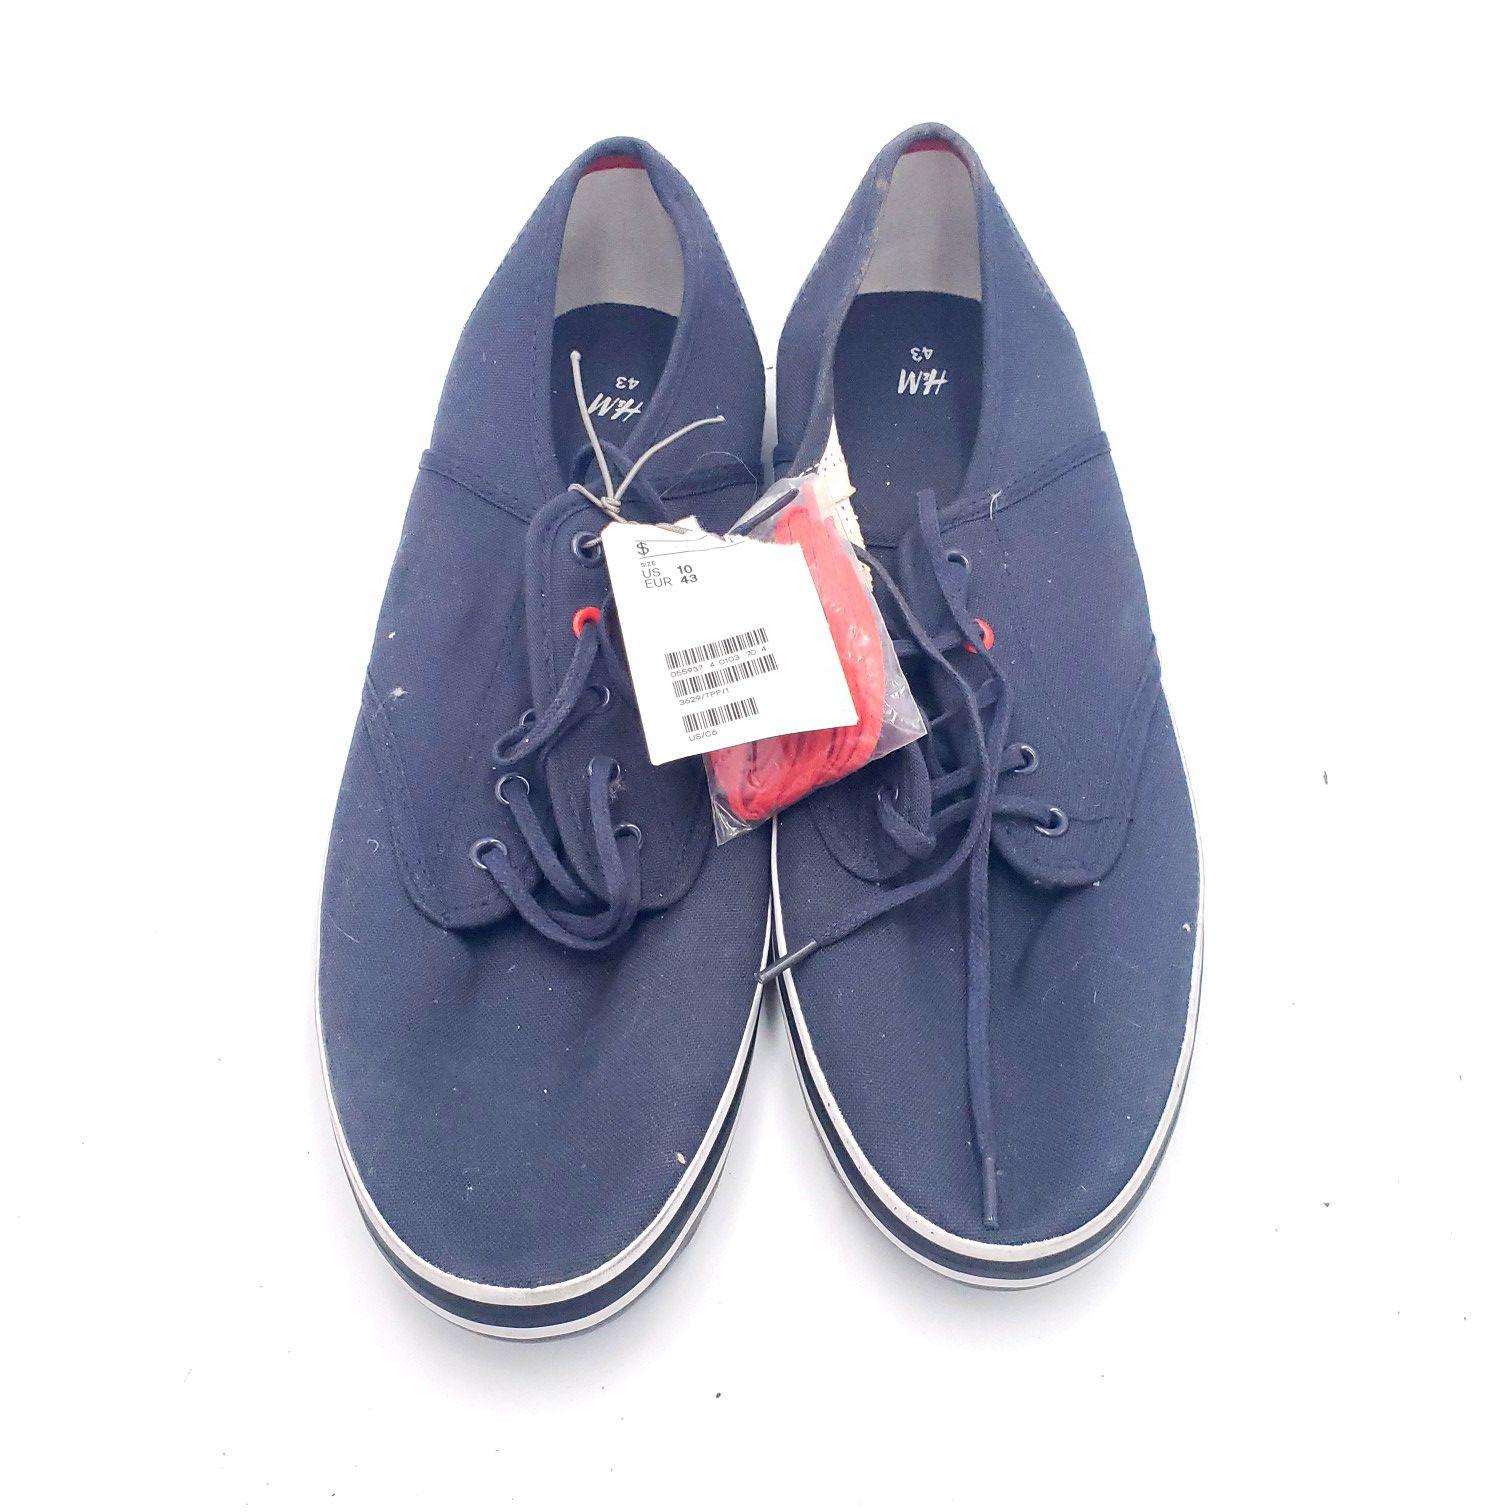 H&M Mens Sneakers Blue Canvas Lace Up 10